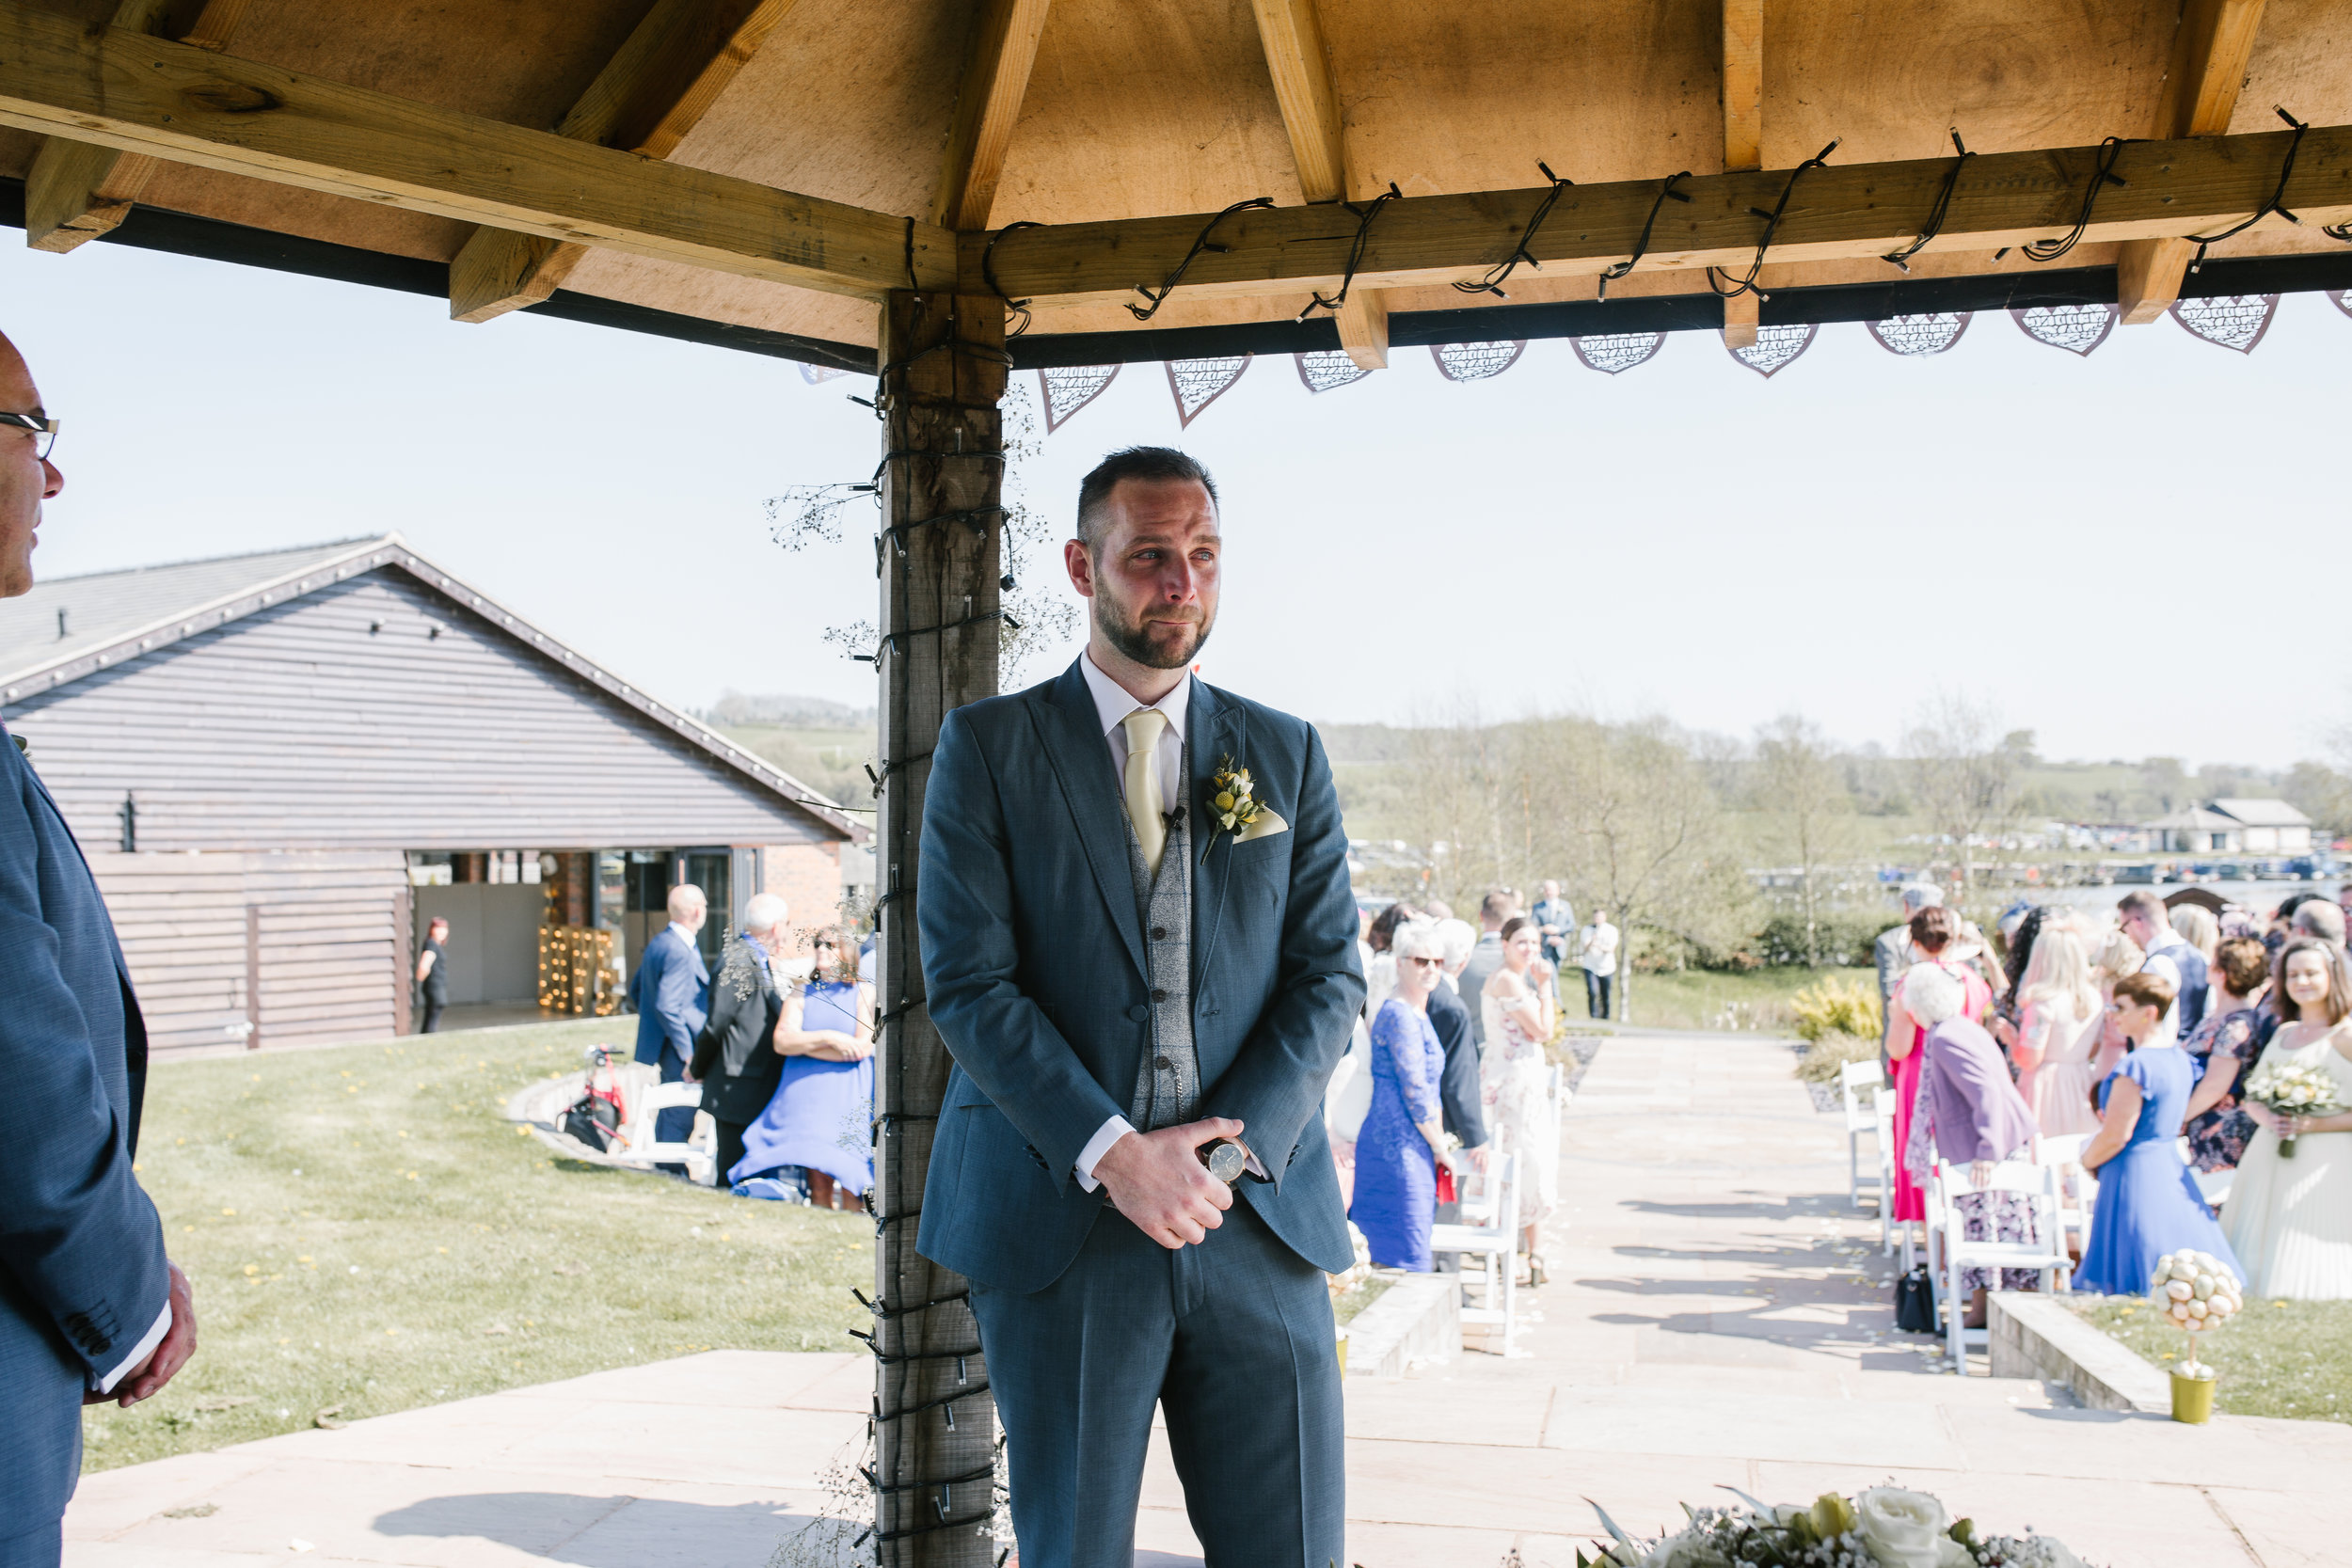 groom waiting for his bride at the outdoor wedding ceremony at the boat house staffordshire